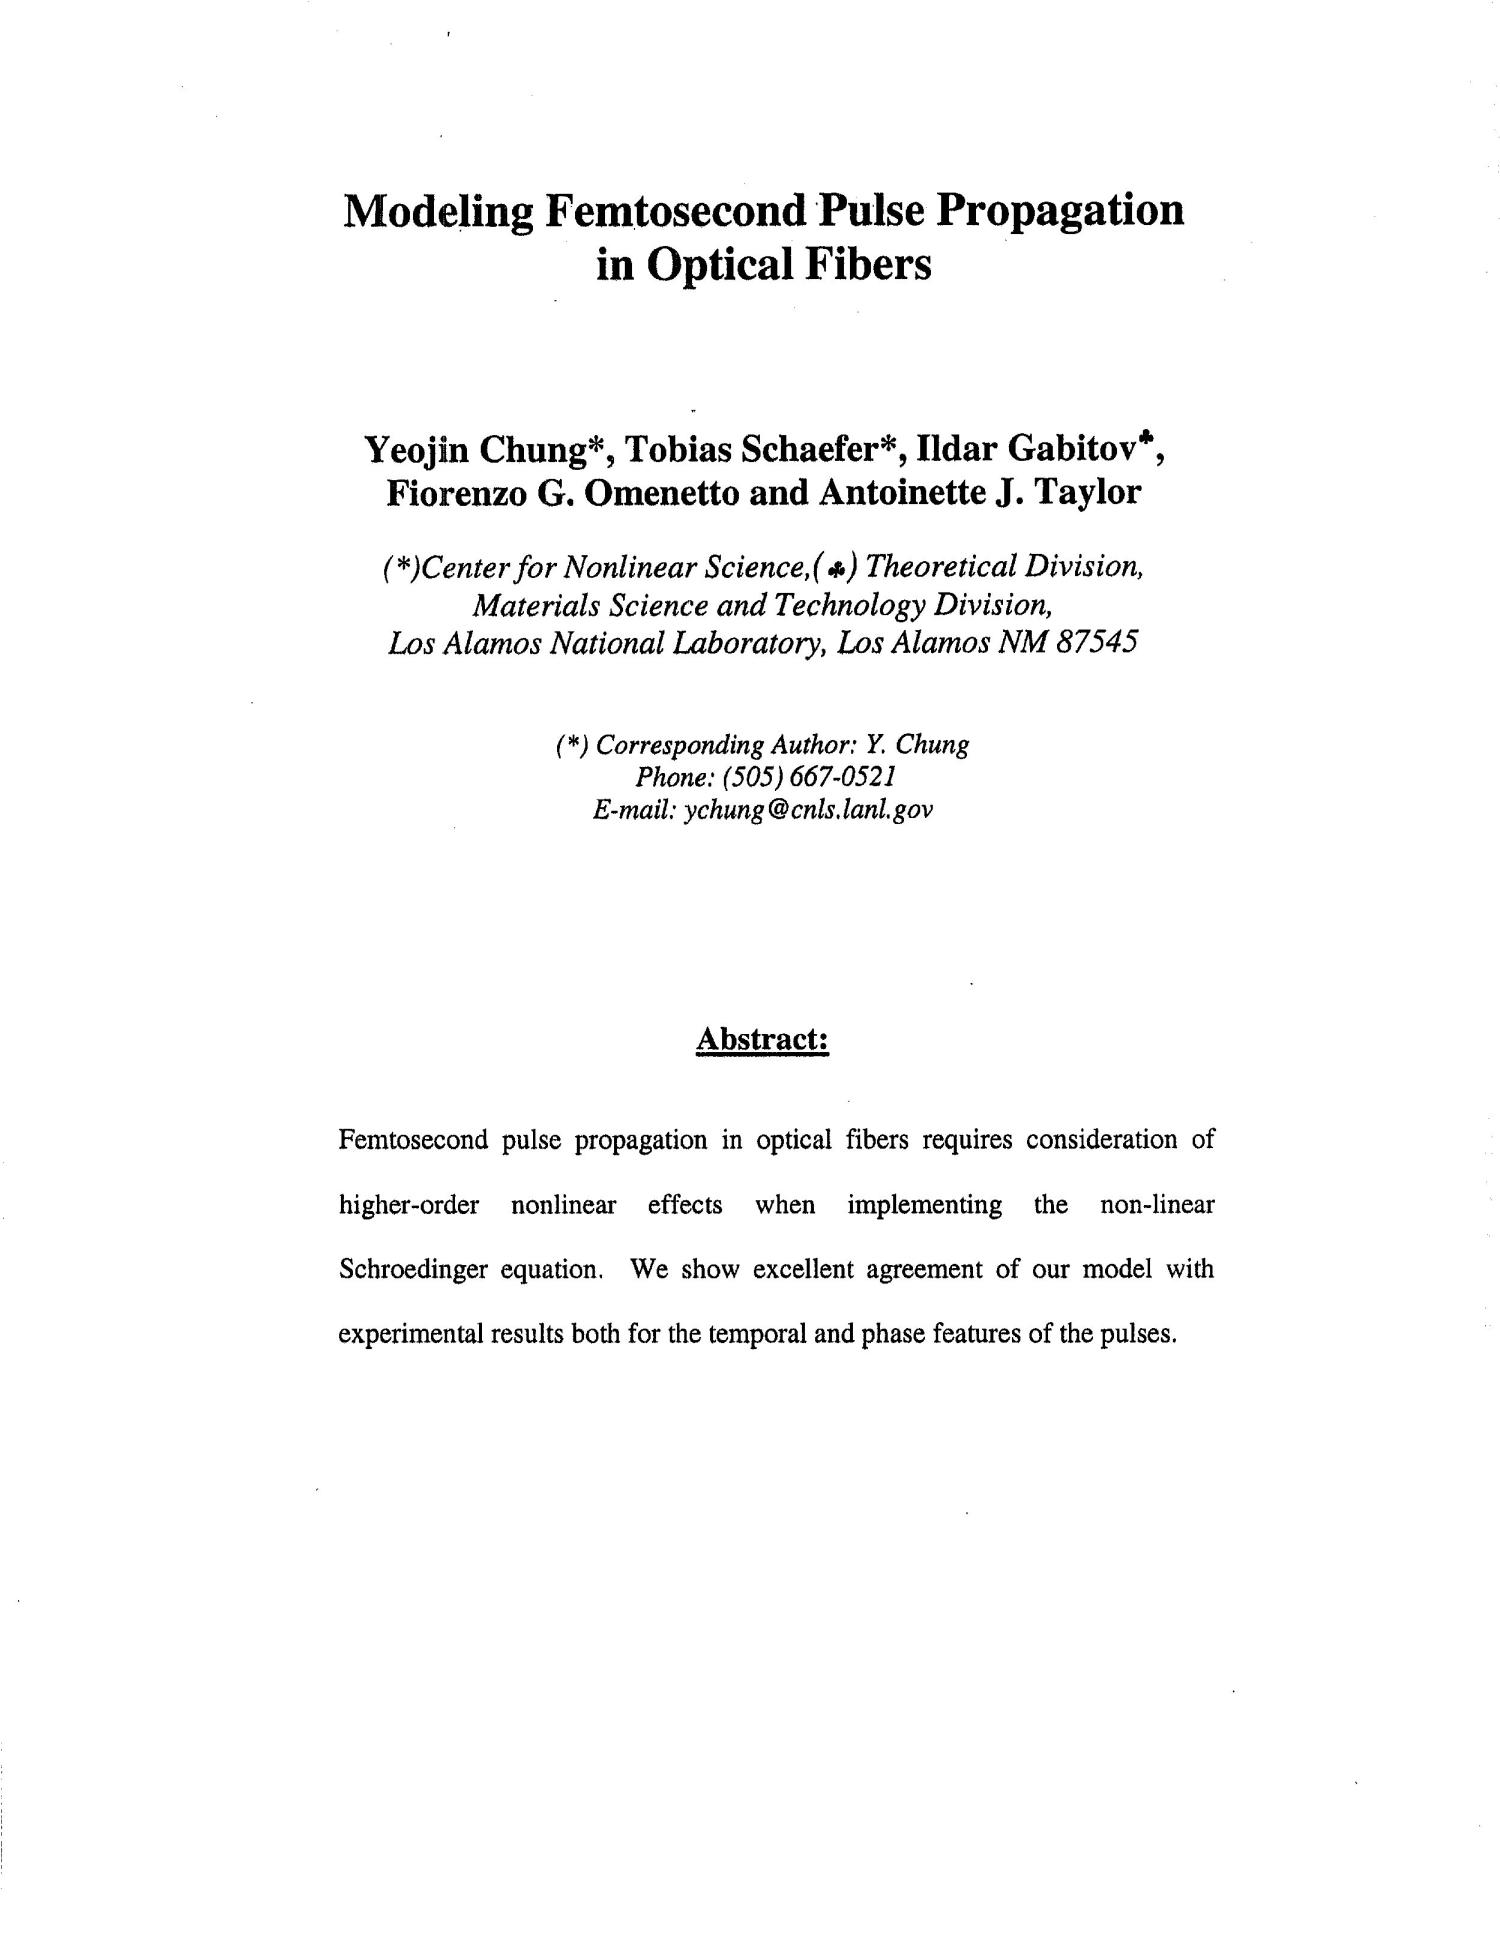 Modeling femtosecond pulse propagation in optical fibers.                                                                                                      [Sequence #]: 2 of 5